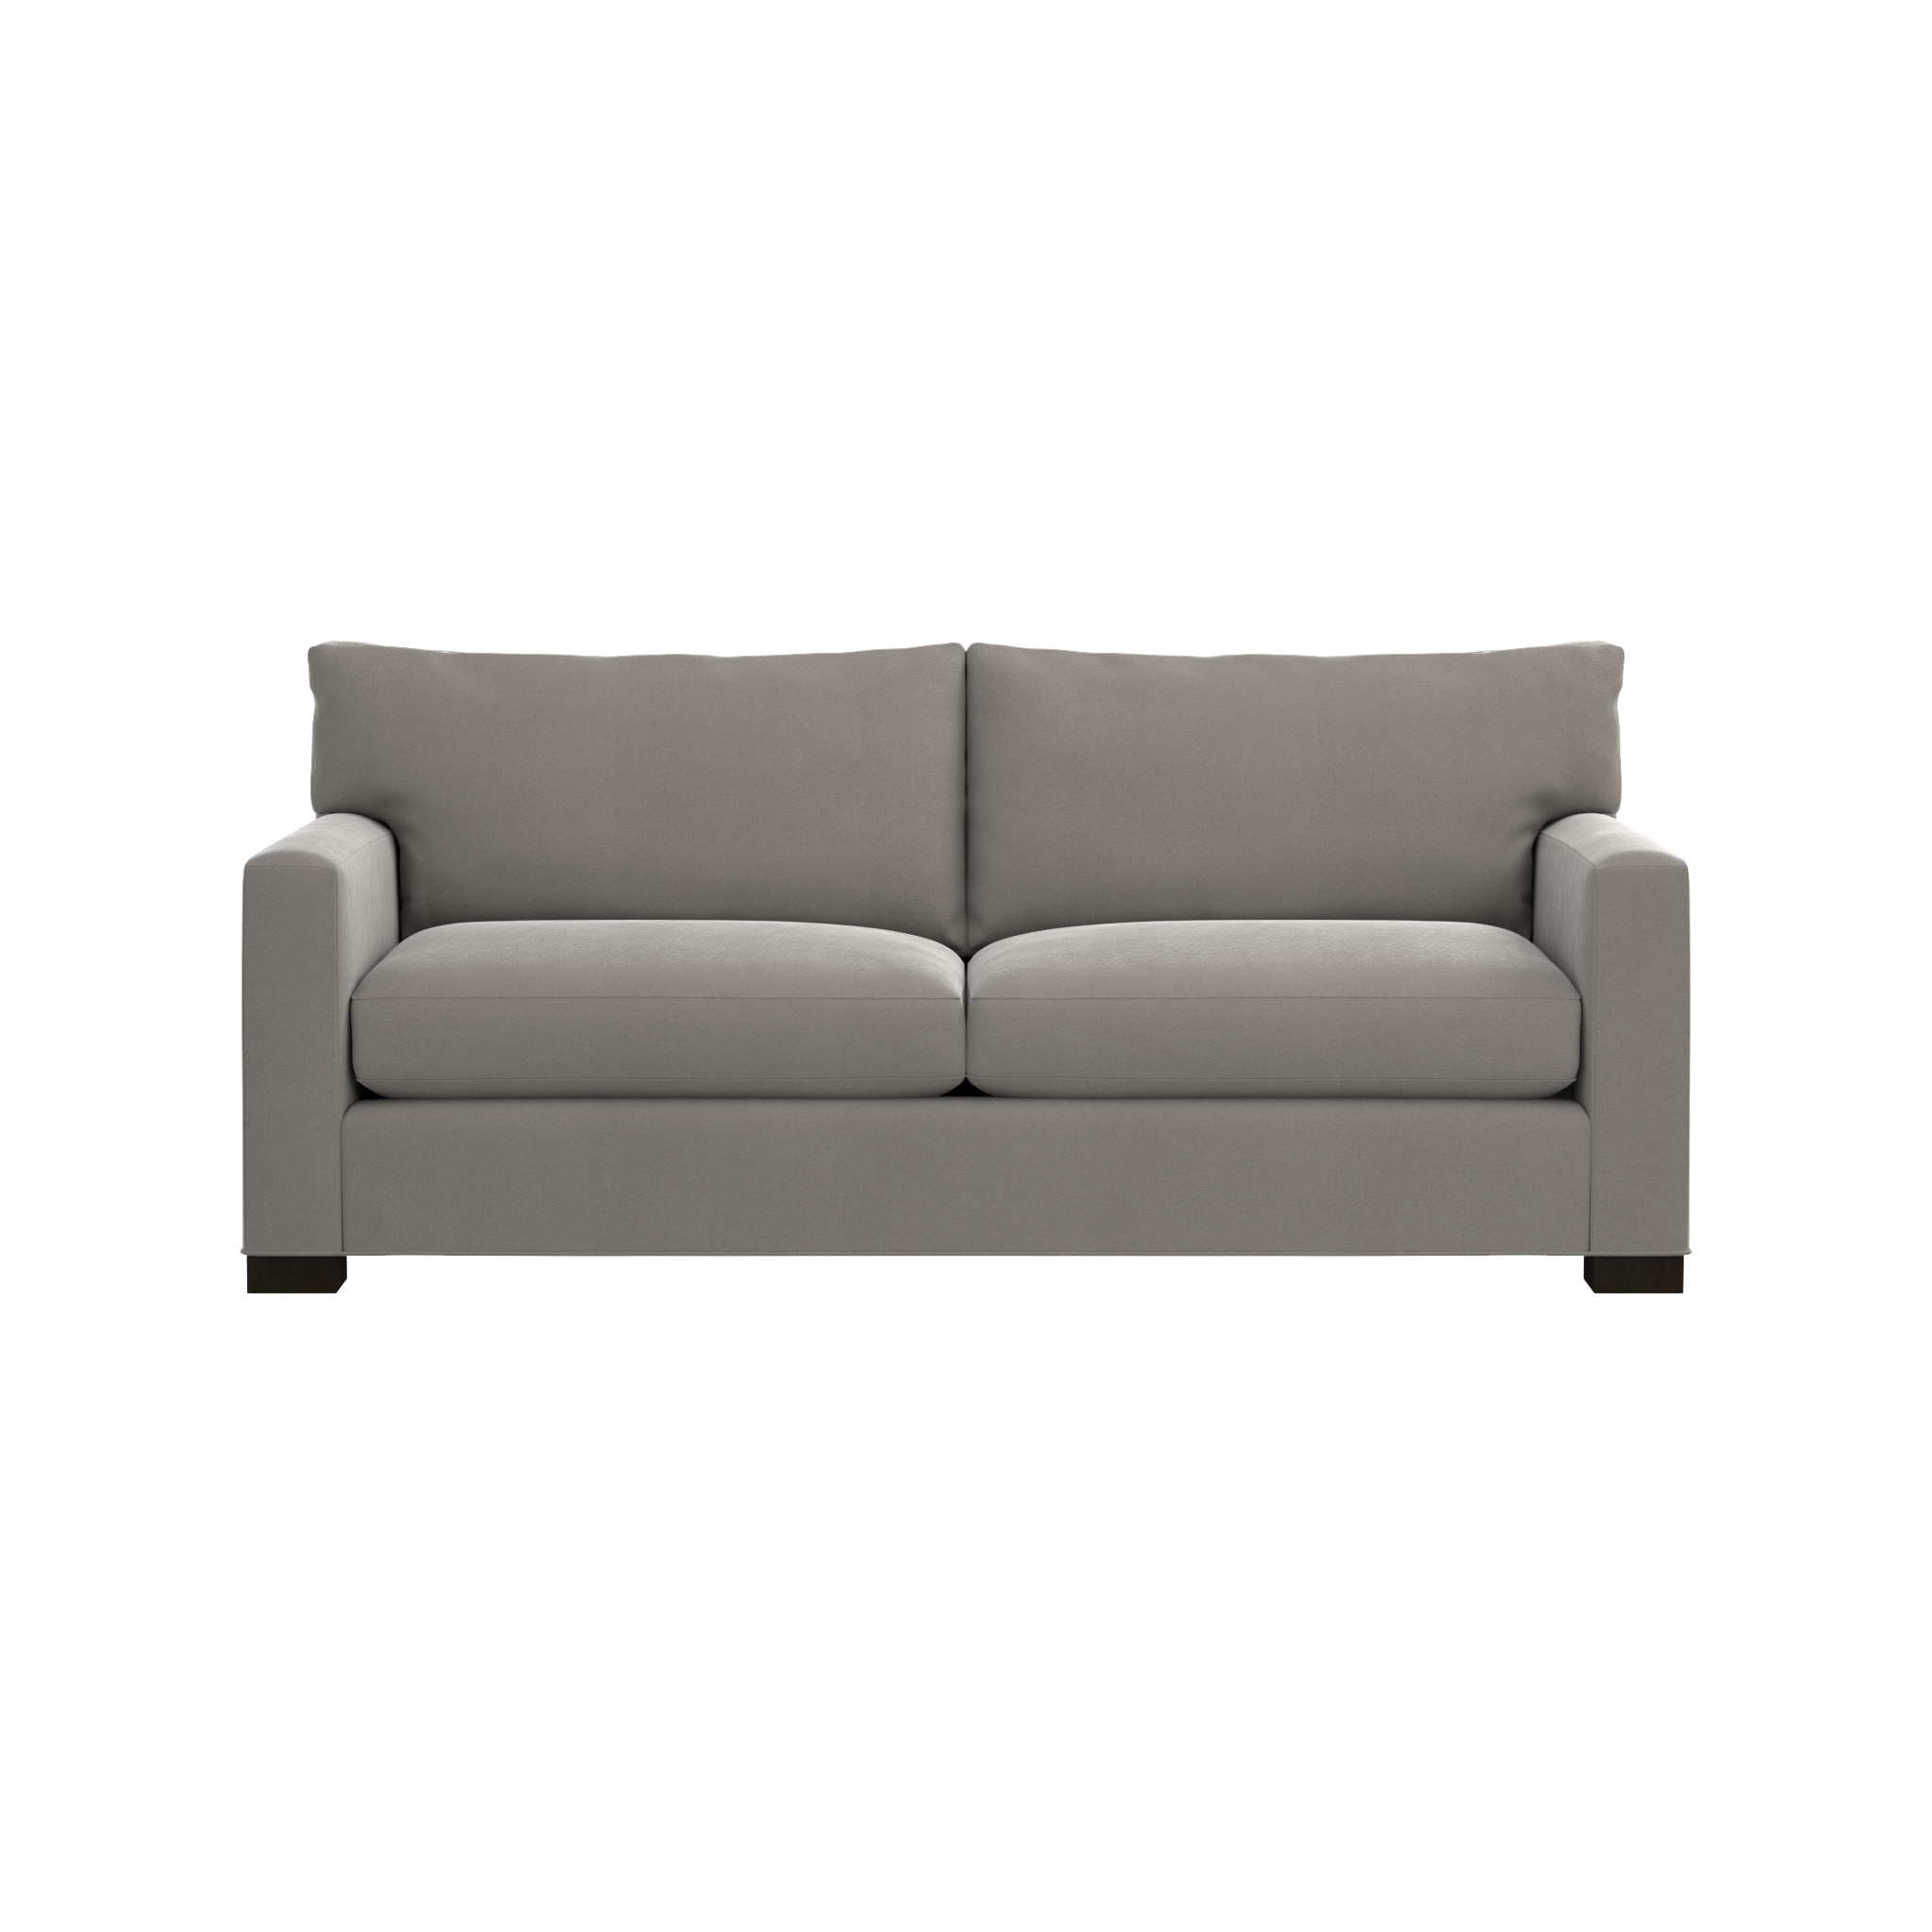 Merveilleux Shop Axis II Grey Microfiber Sofa. Track Arms Create A Clean Look, And Low